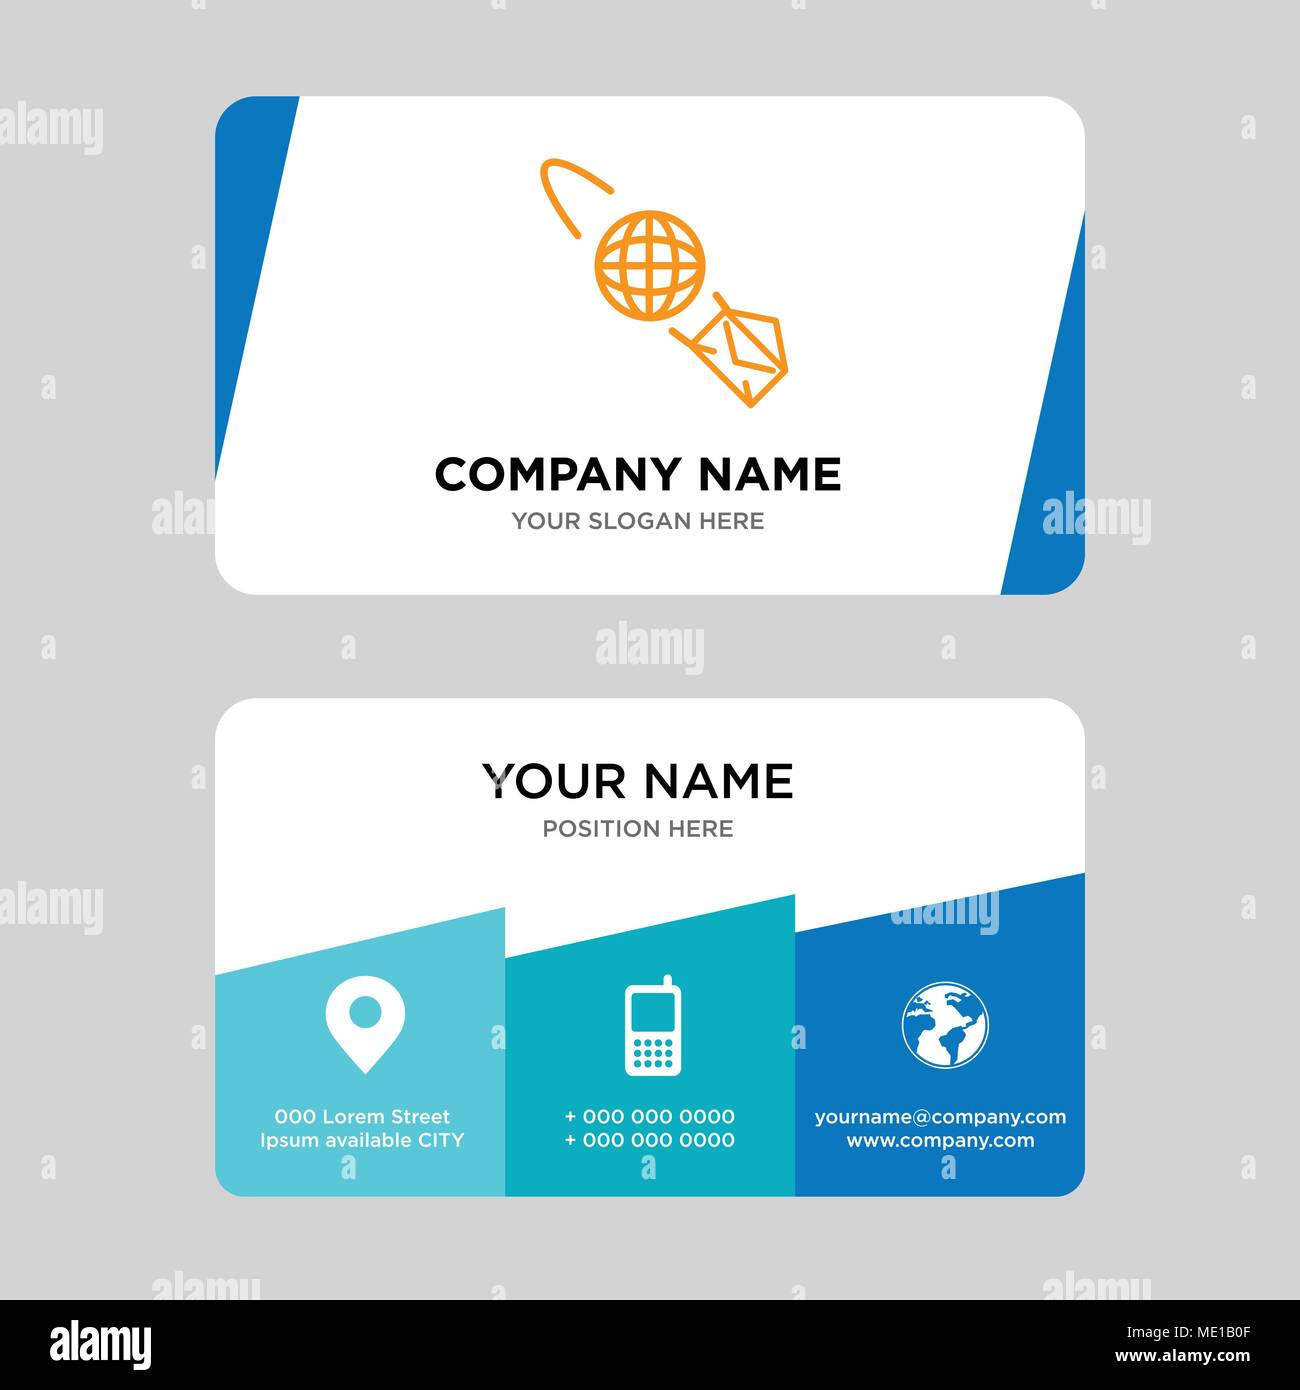 Email planet business card design template visiting for your email planet business card design template visiting for your company modern creative and clean identity card vector illustration fbccfo Gallery